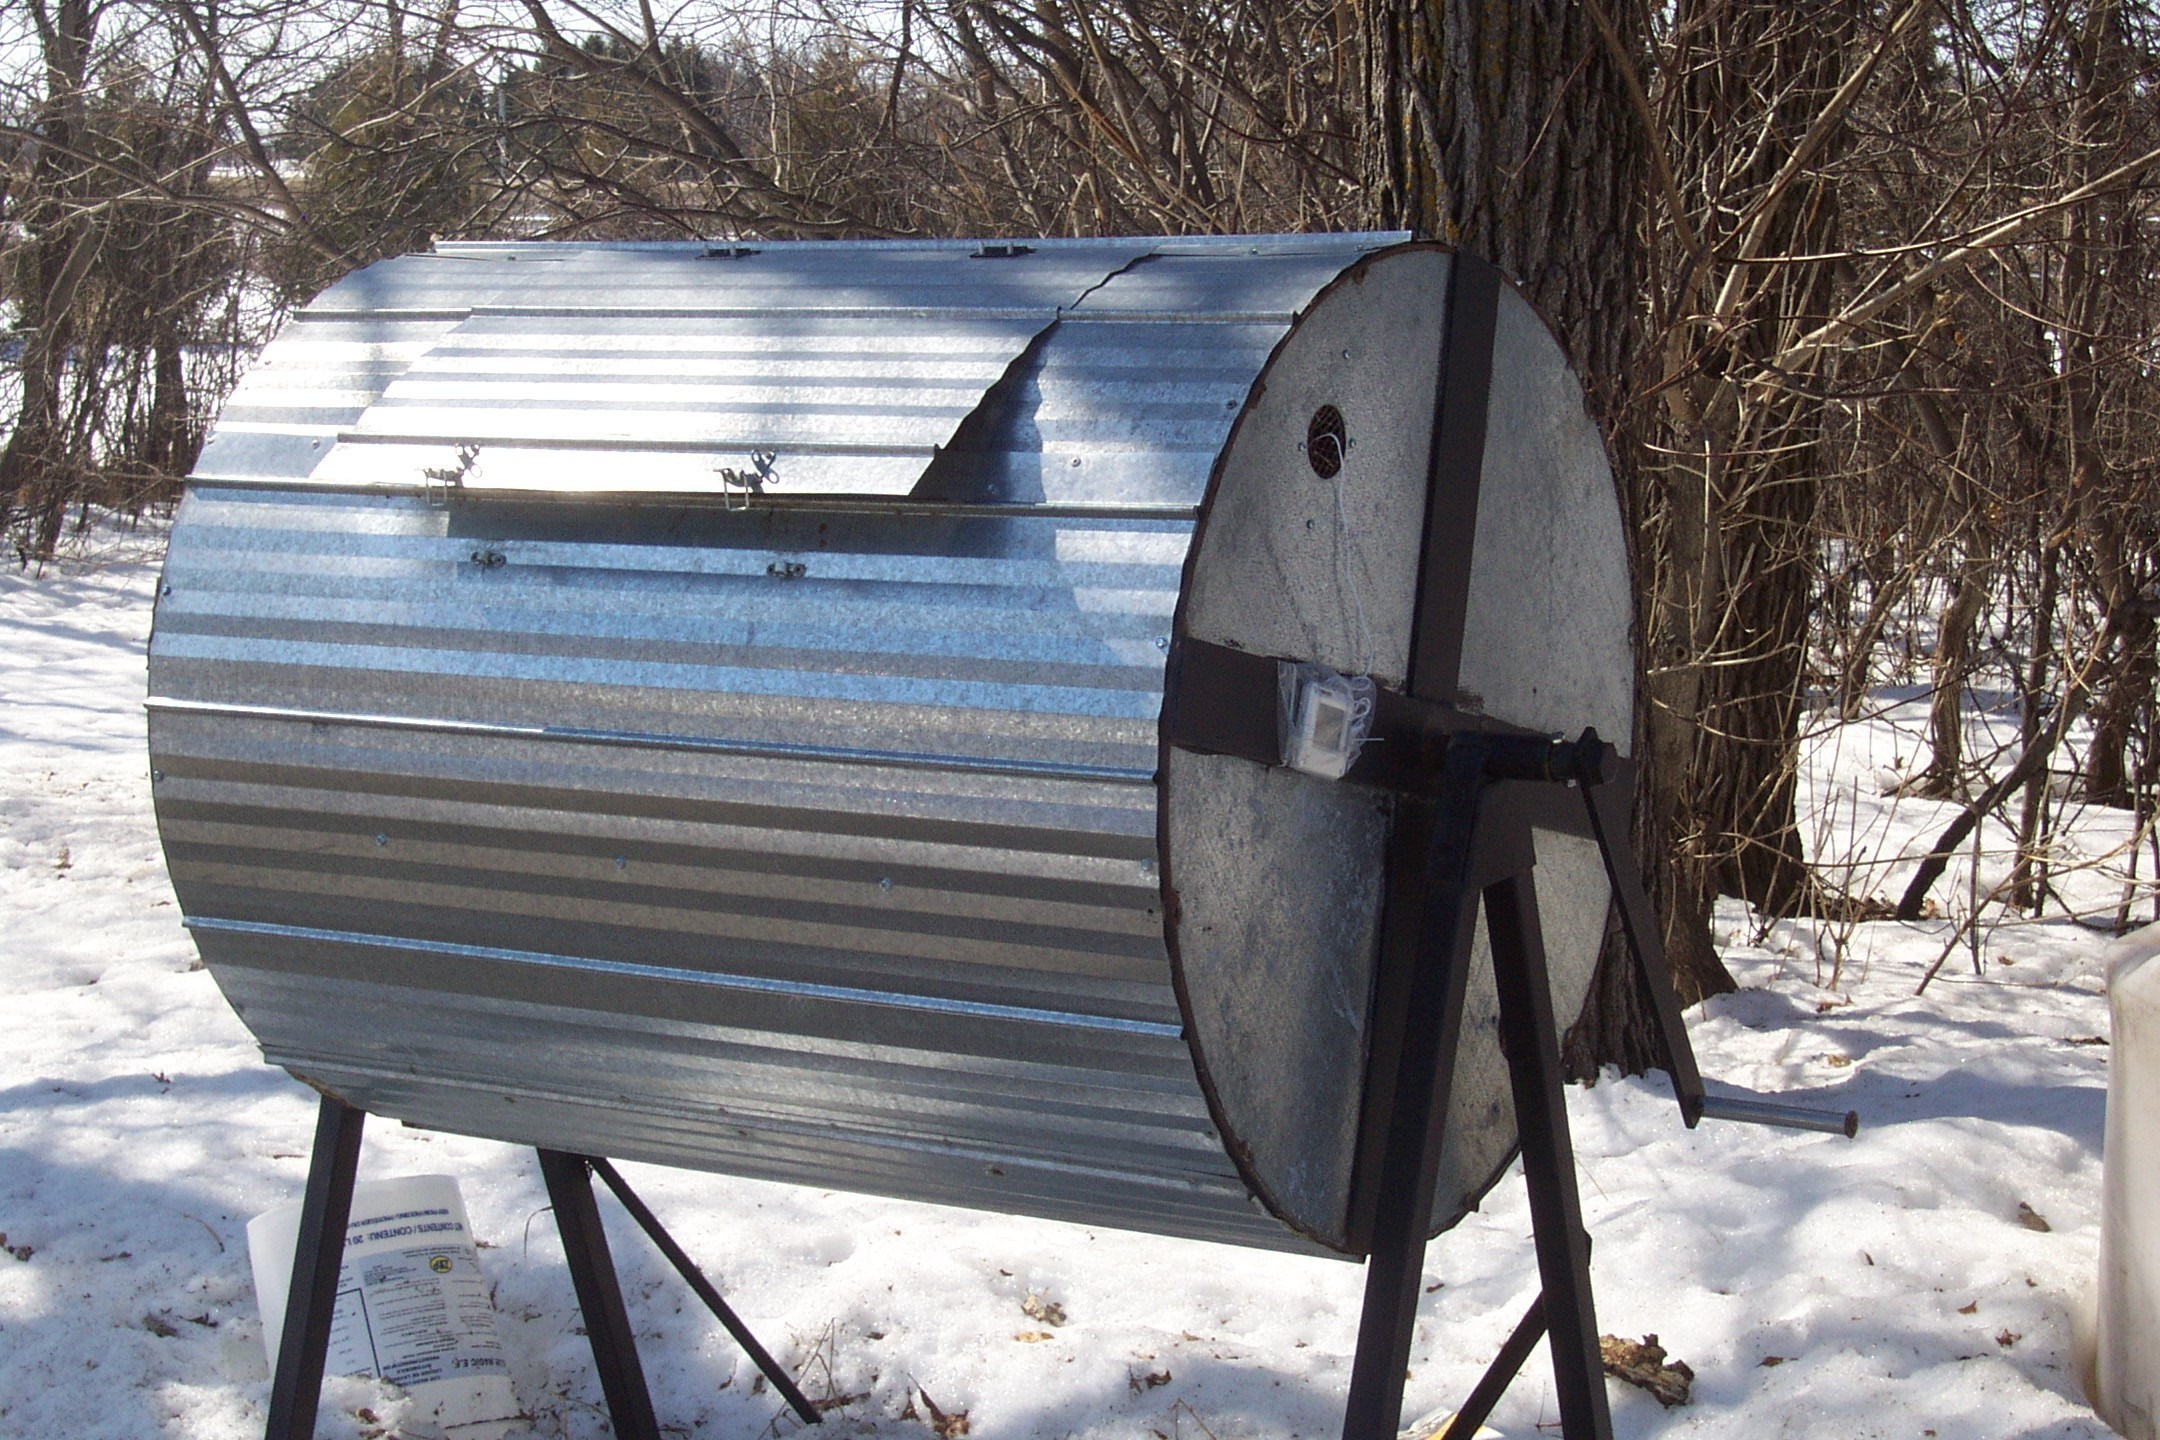 A compost barrel which can be rotated allows for easy mixing.